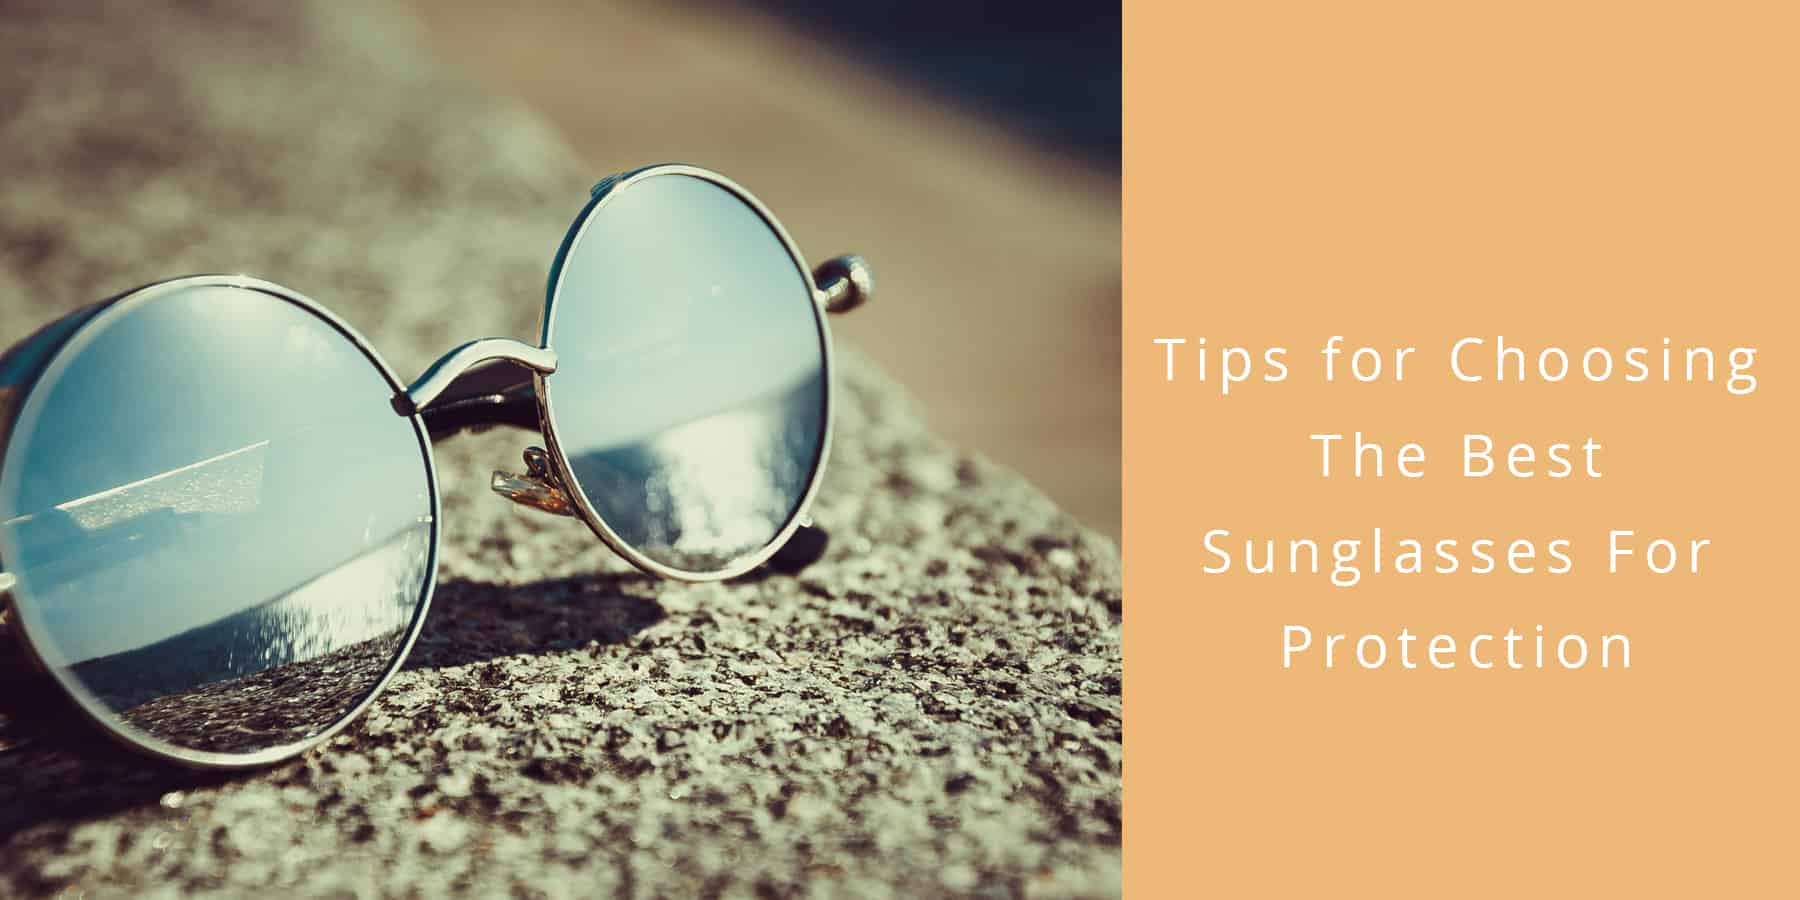 e8e7fa23f06 Tips for Choosing the Best Sunglasses For Eye Protection